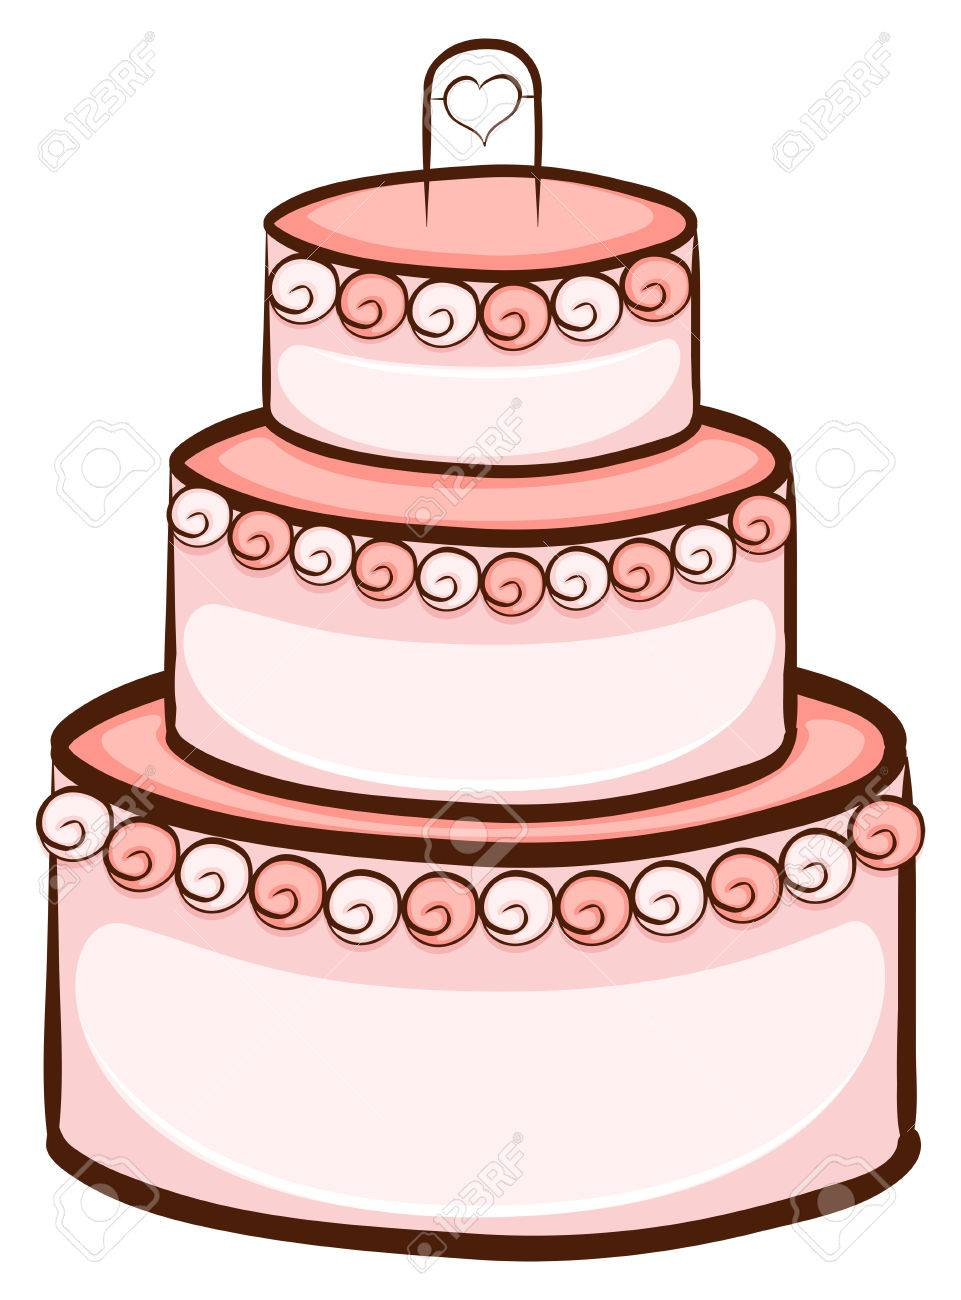 simple drawing of birthday cake ; 33090114-illustration-of-a-simple-drawing-of-a-wedding-cake-on-a-white-background